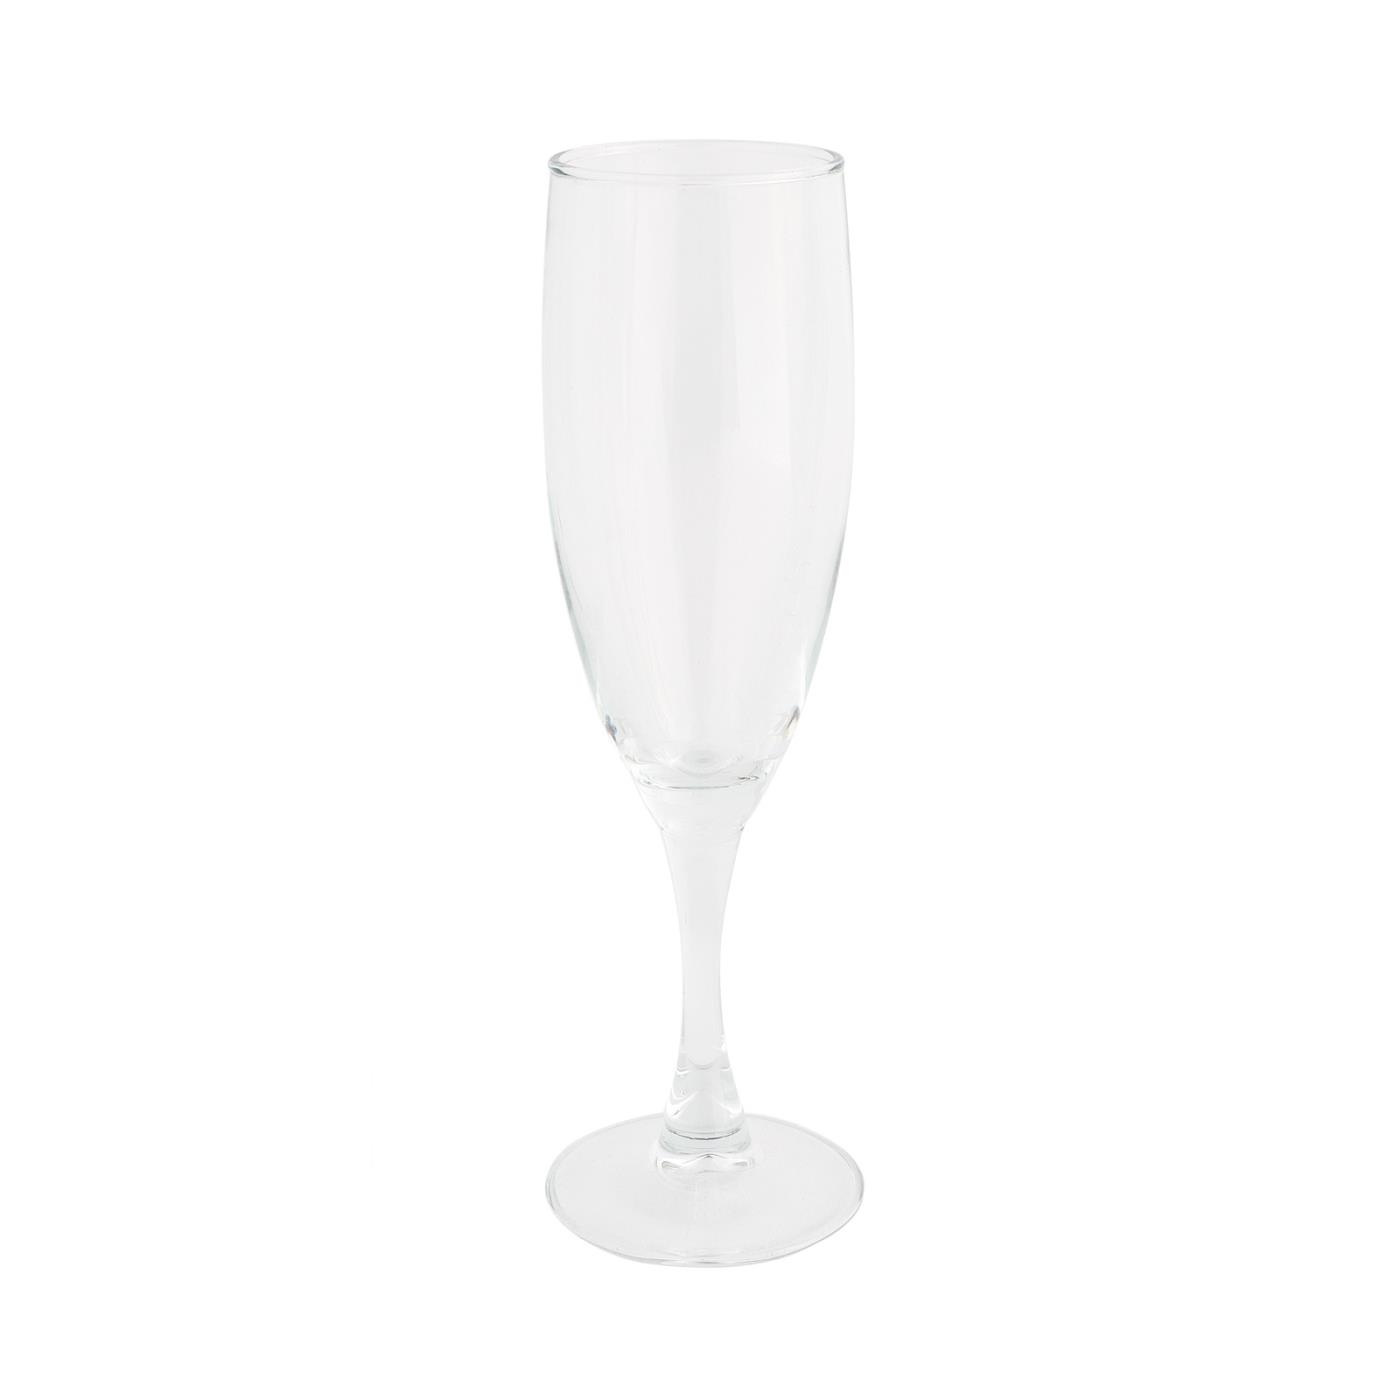 Standard All Purpose -  Standard Champagne Flute